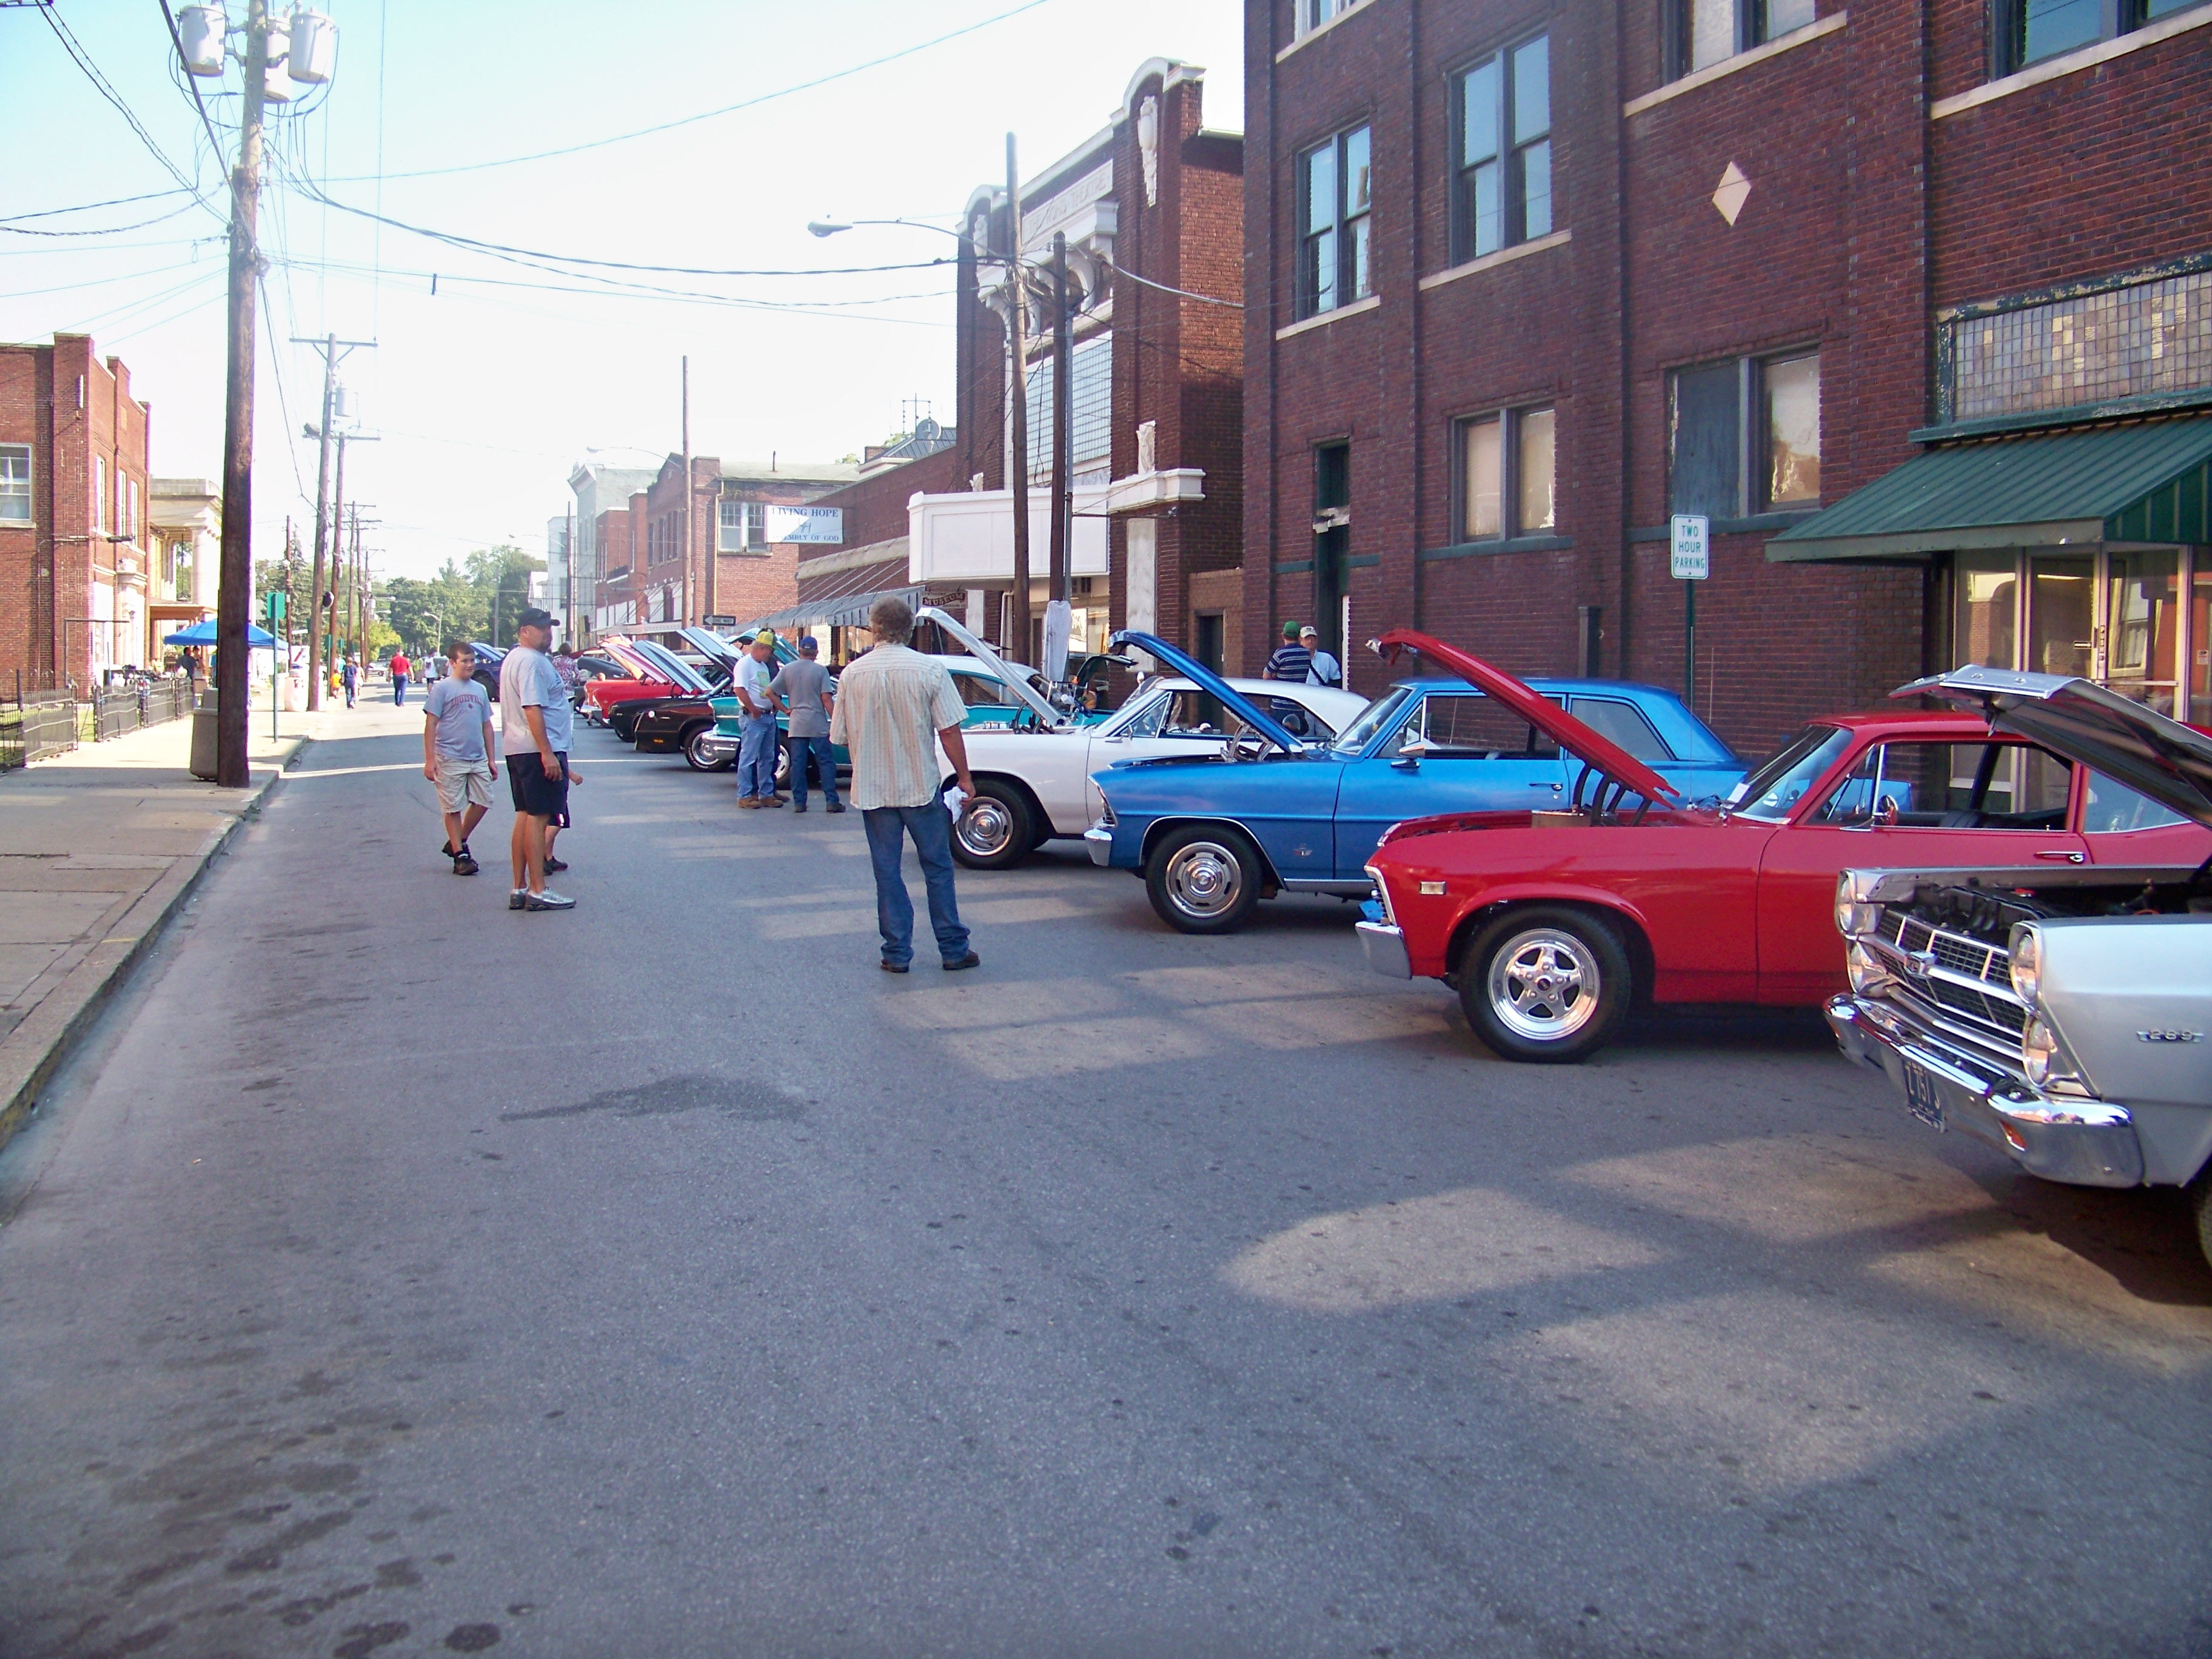 Cynthiana Rod Run